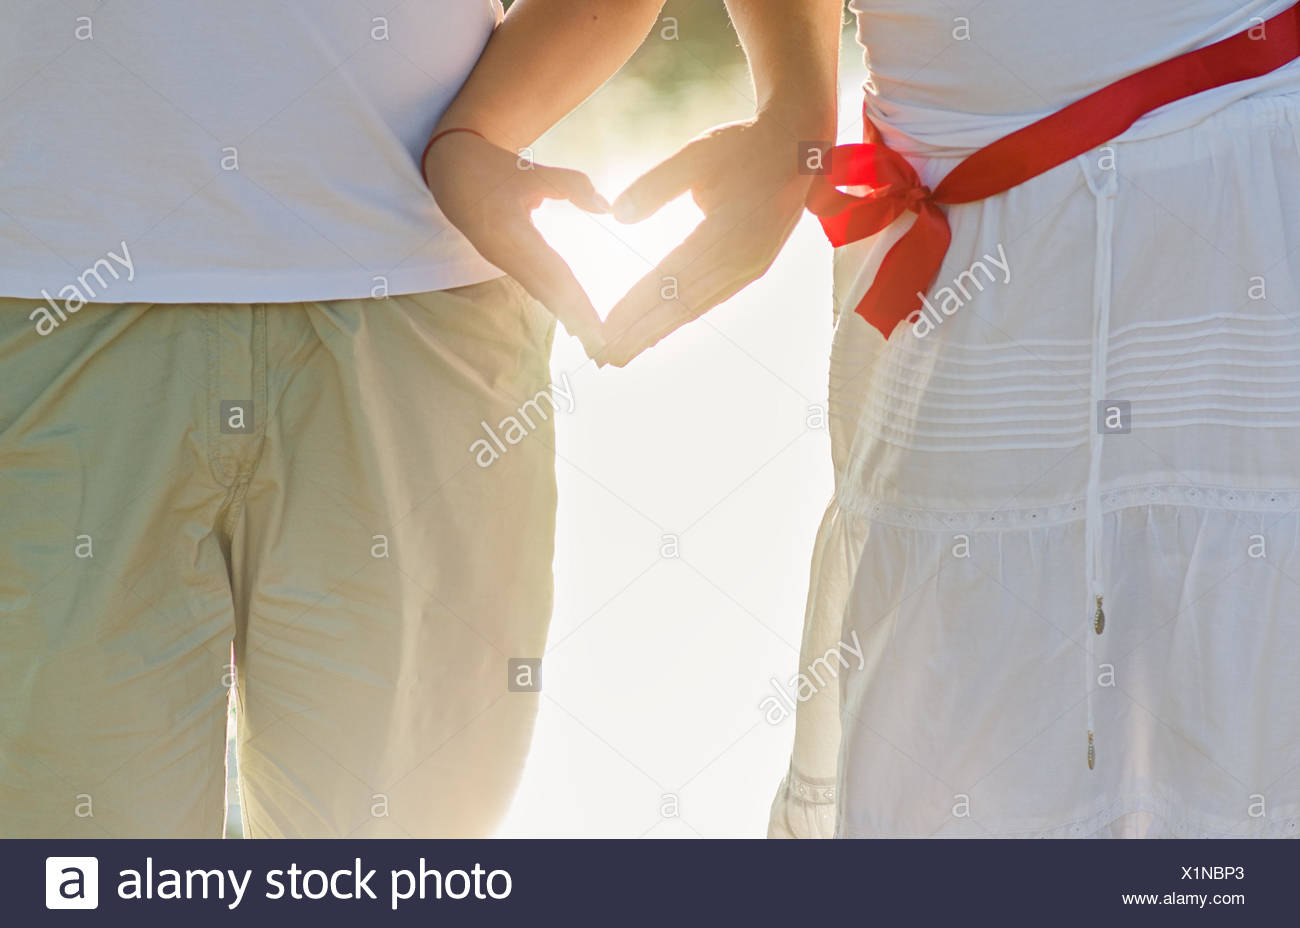 Hands of two people making the shape of heart - Stock Image